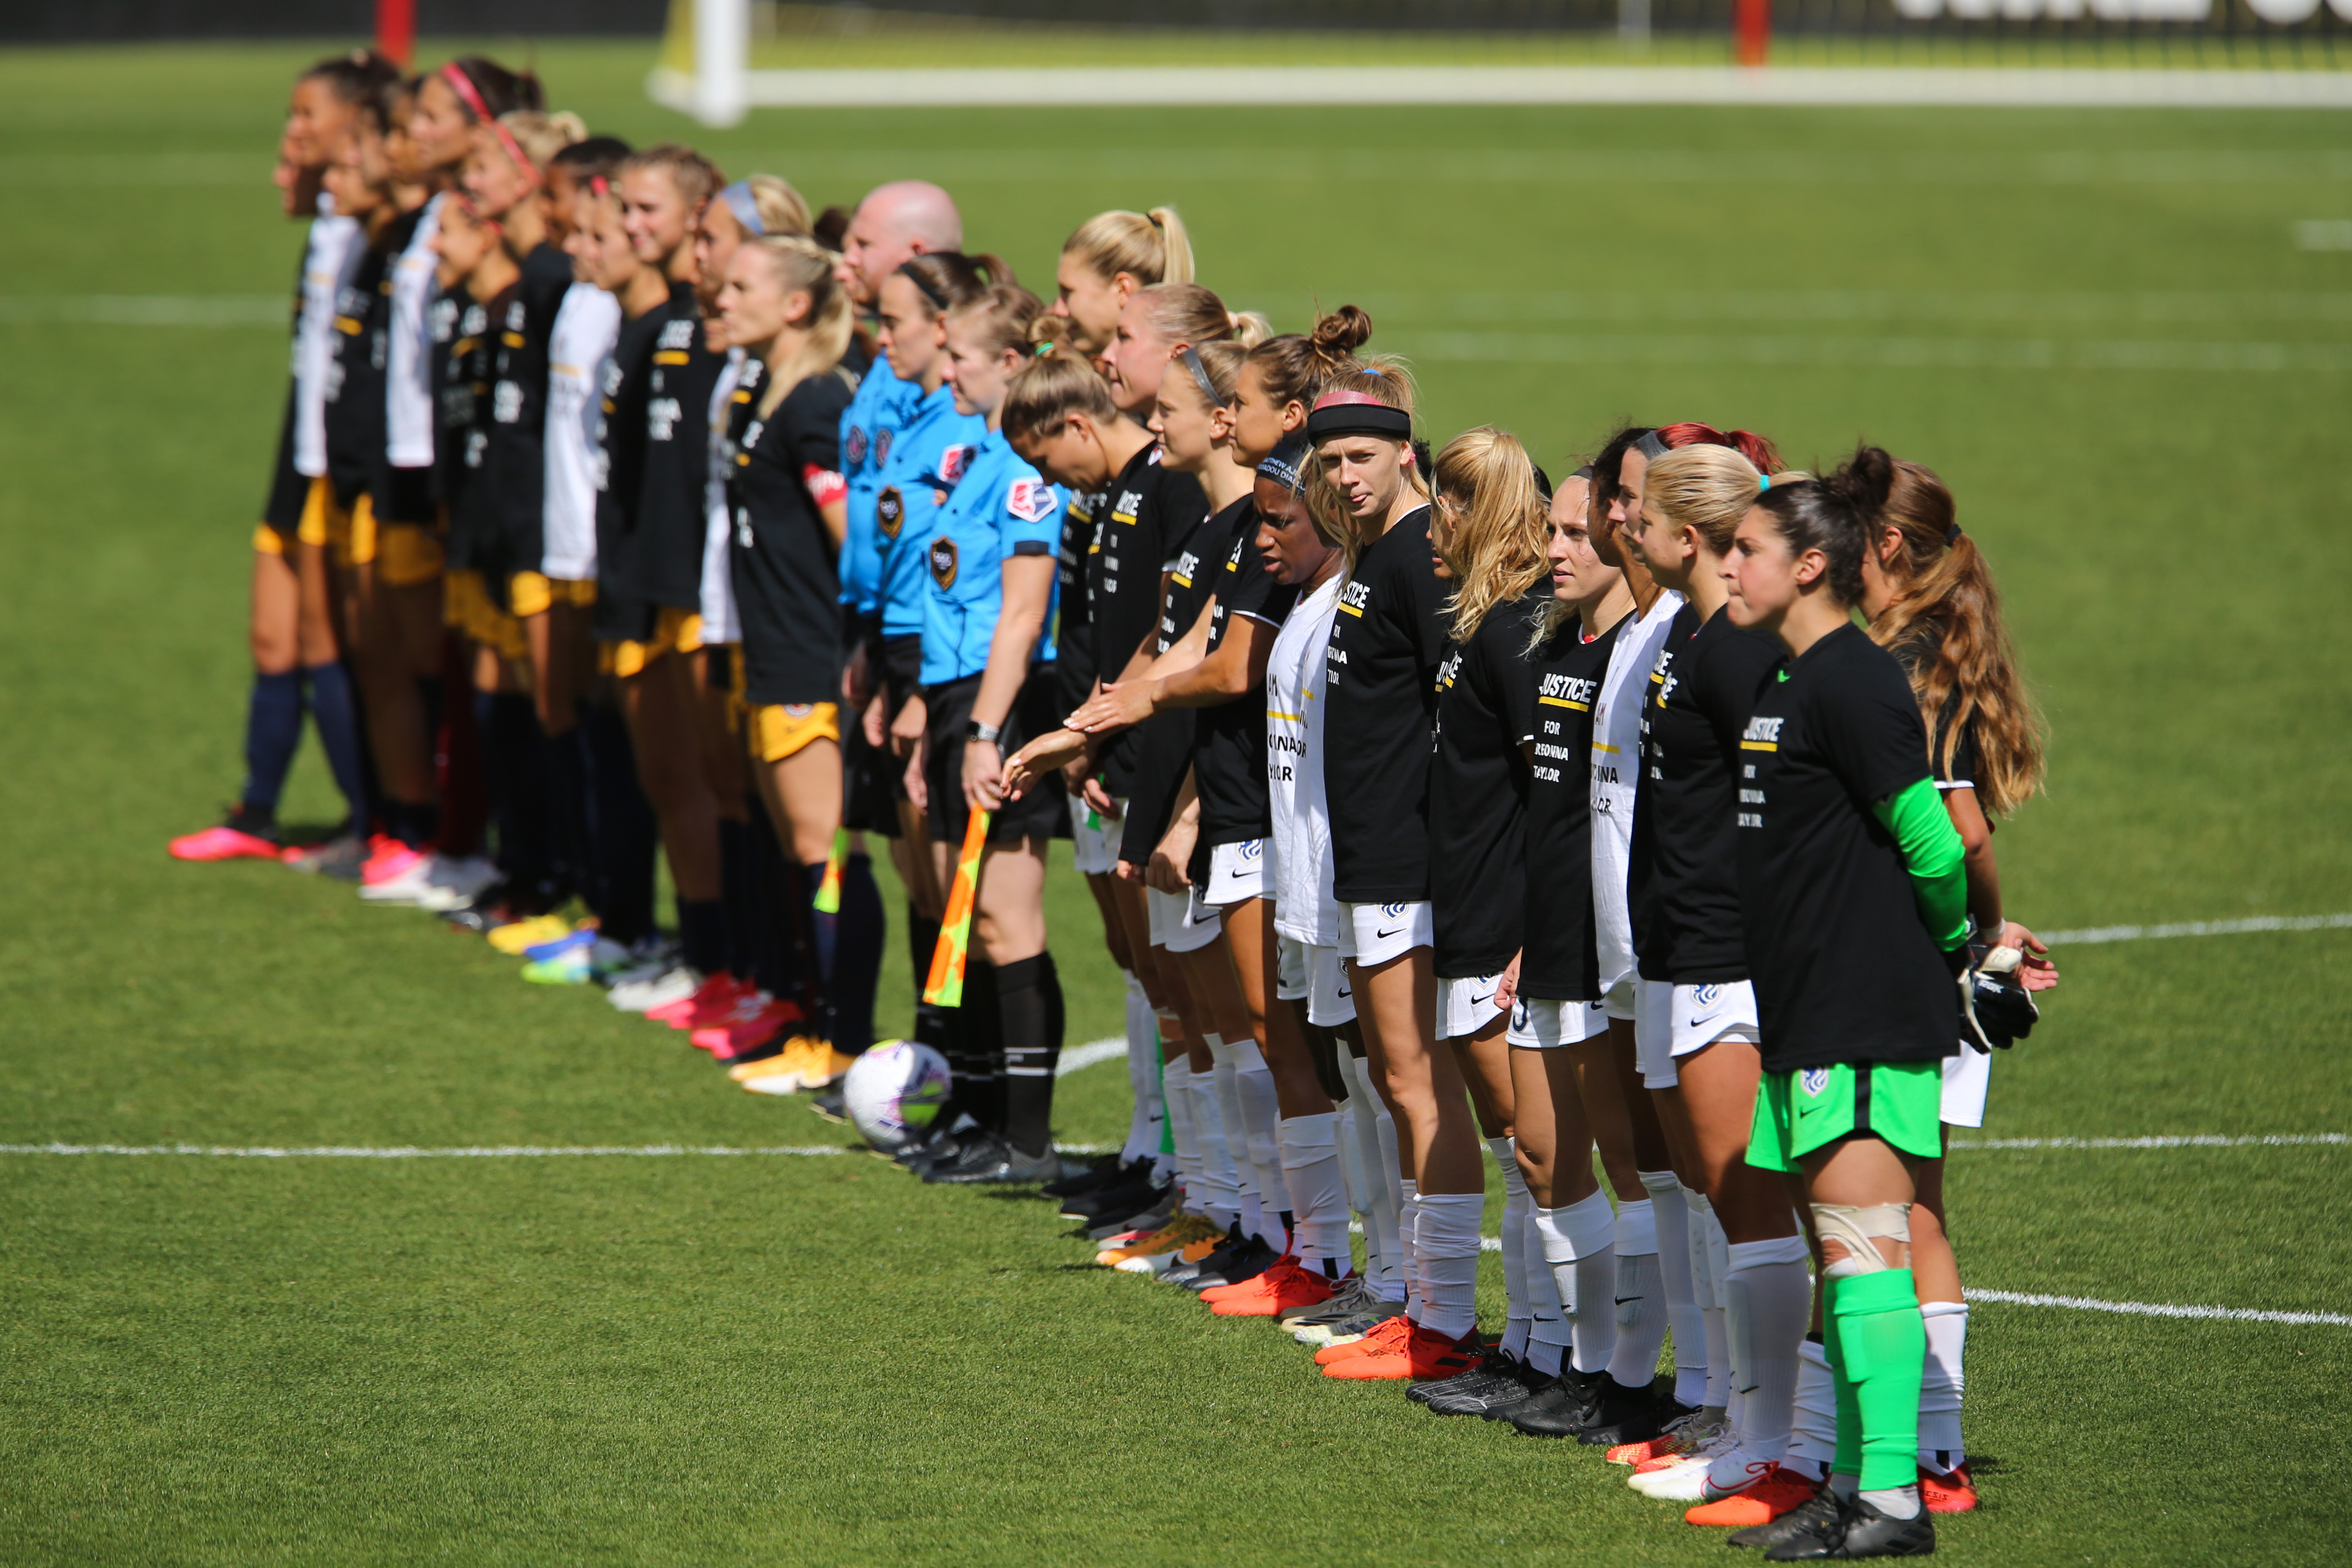 Players from Utah Royals FC and OL Reign FC line up before the start of a NWSL soccer game at Rio Tinto Stadium in Sandy on Saturday, Sept. 26, 2020.